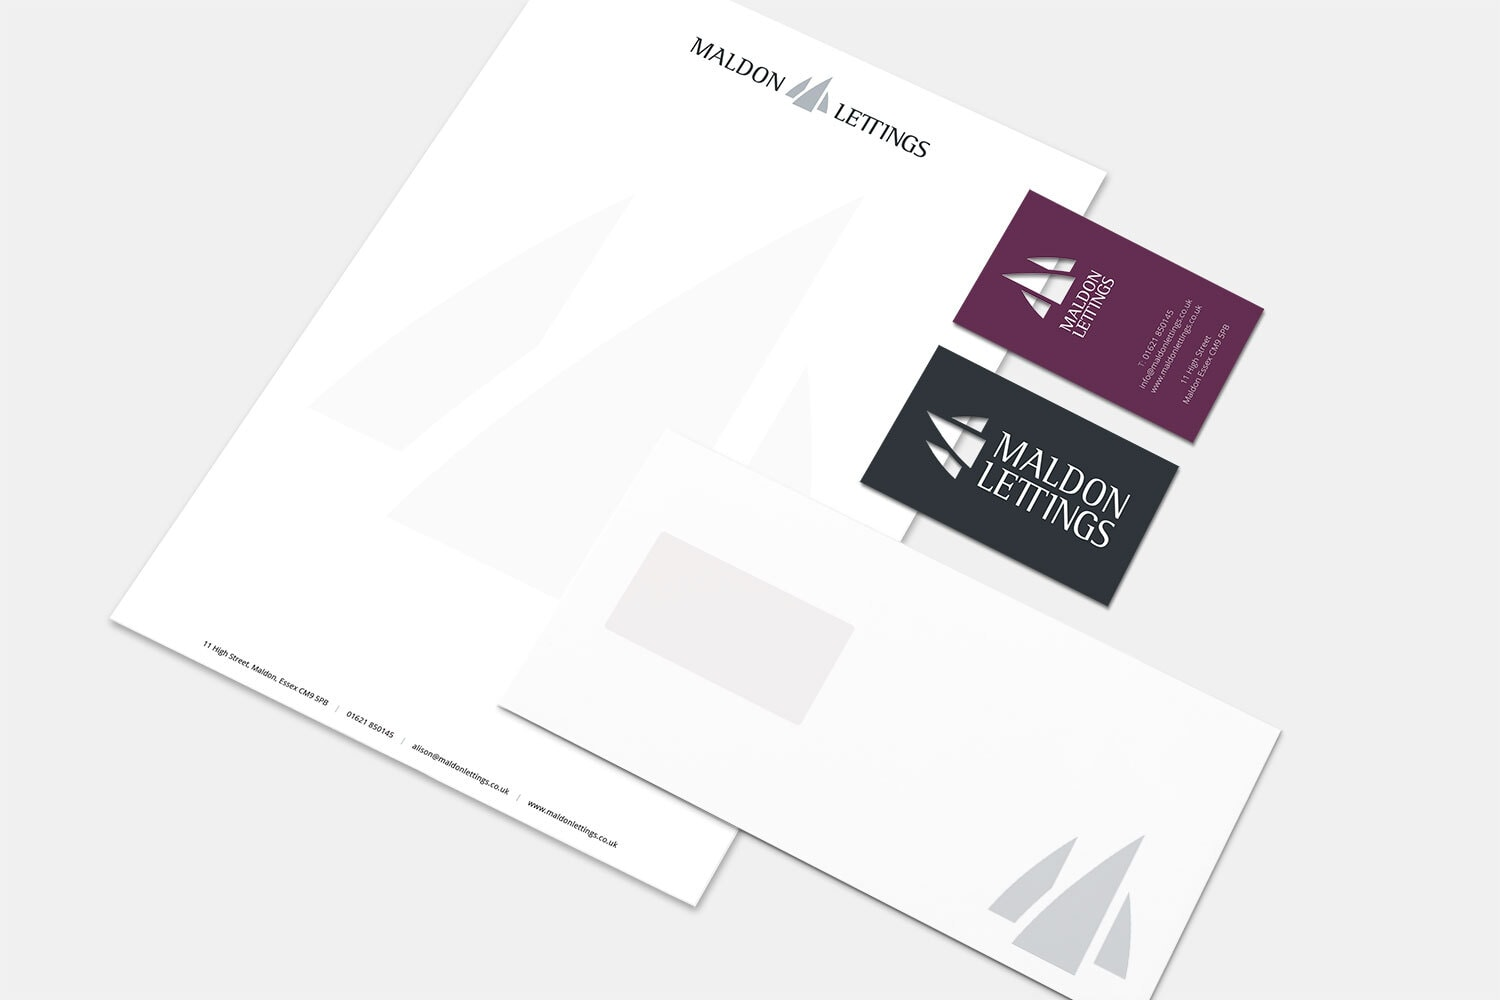 Maldon Lettings branding design corporate stationery pack